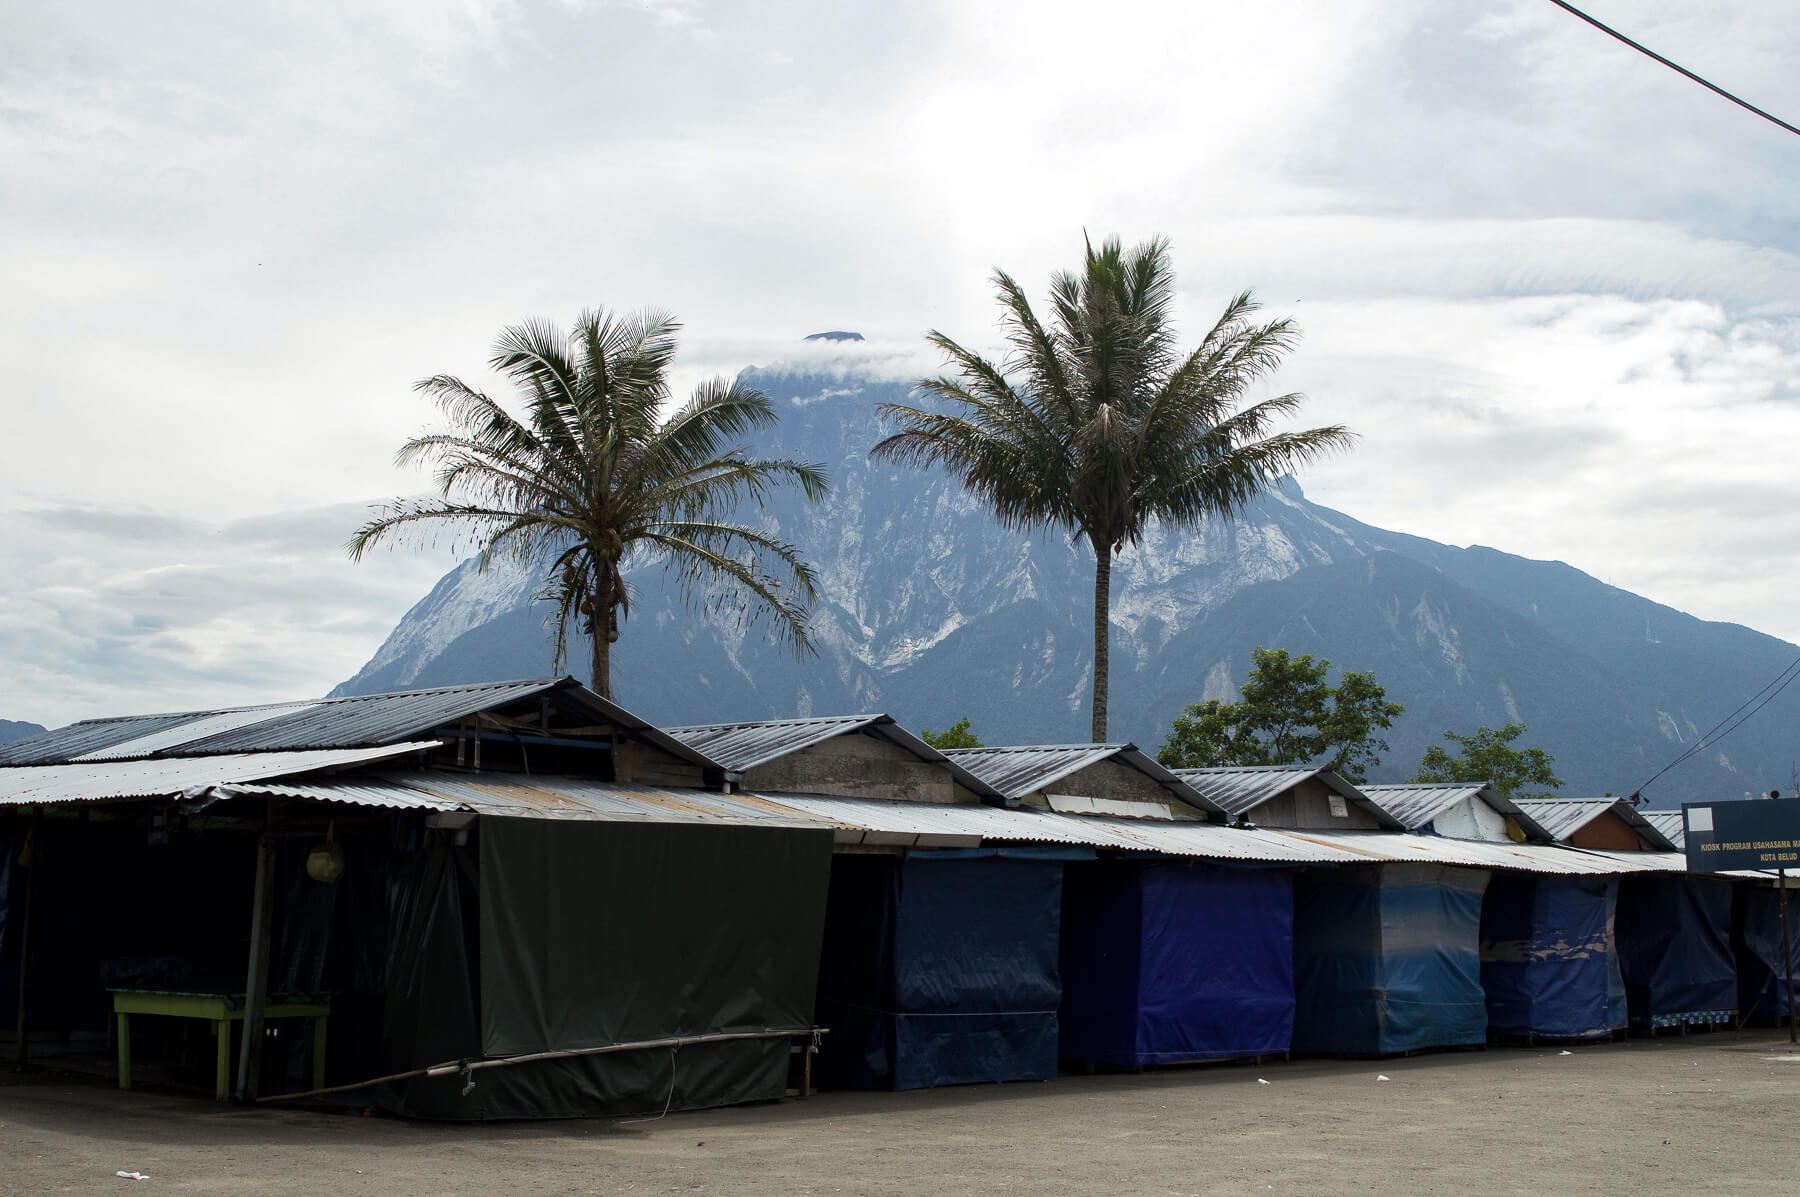 Stalls and palm trees in front of Mount Kinabalu